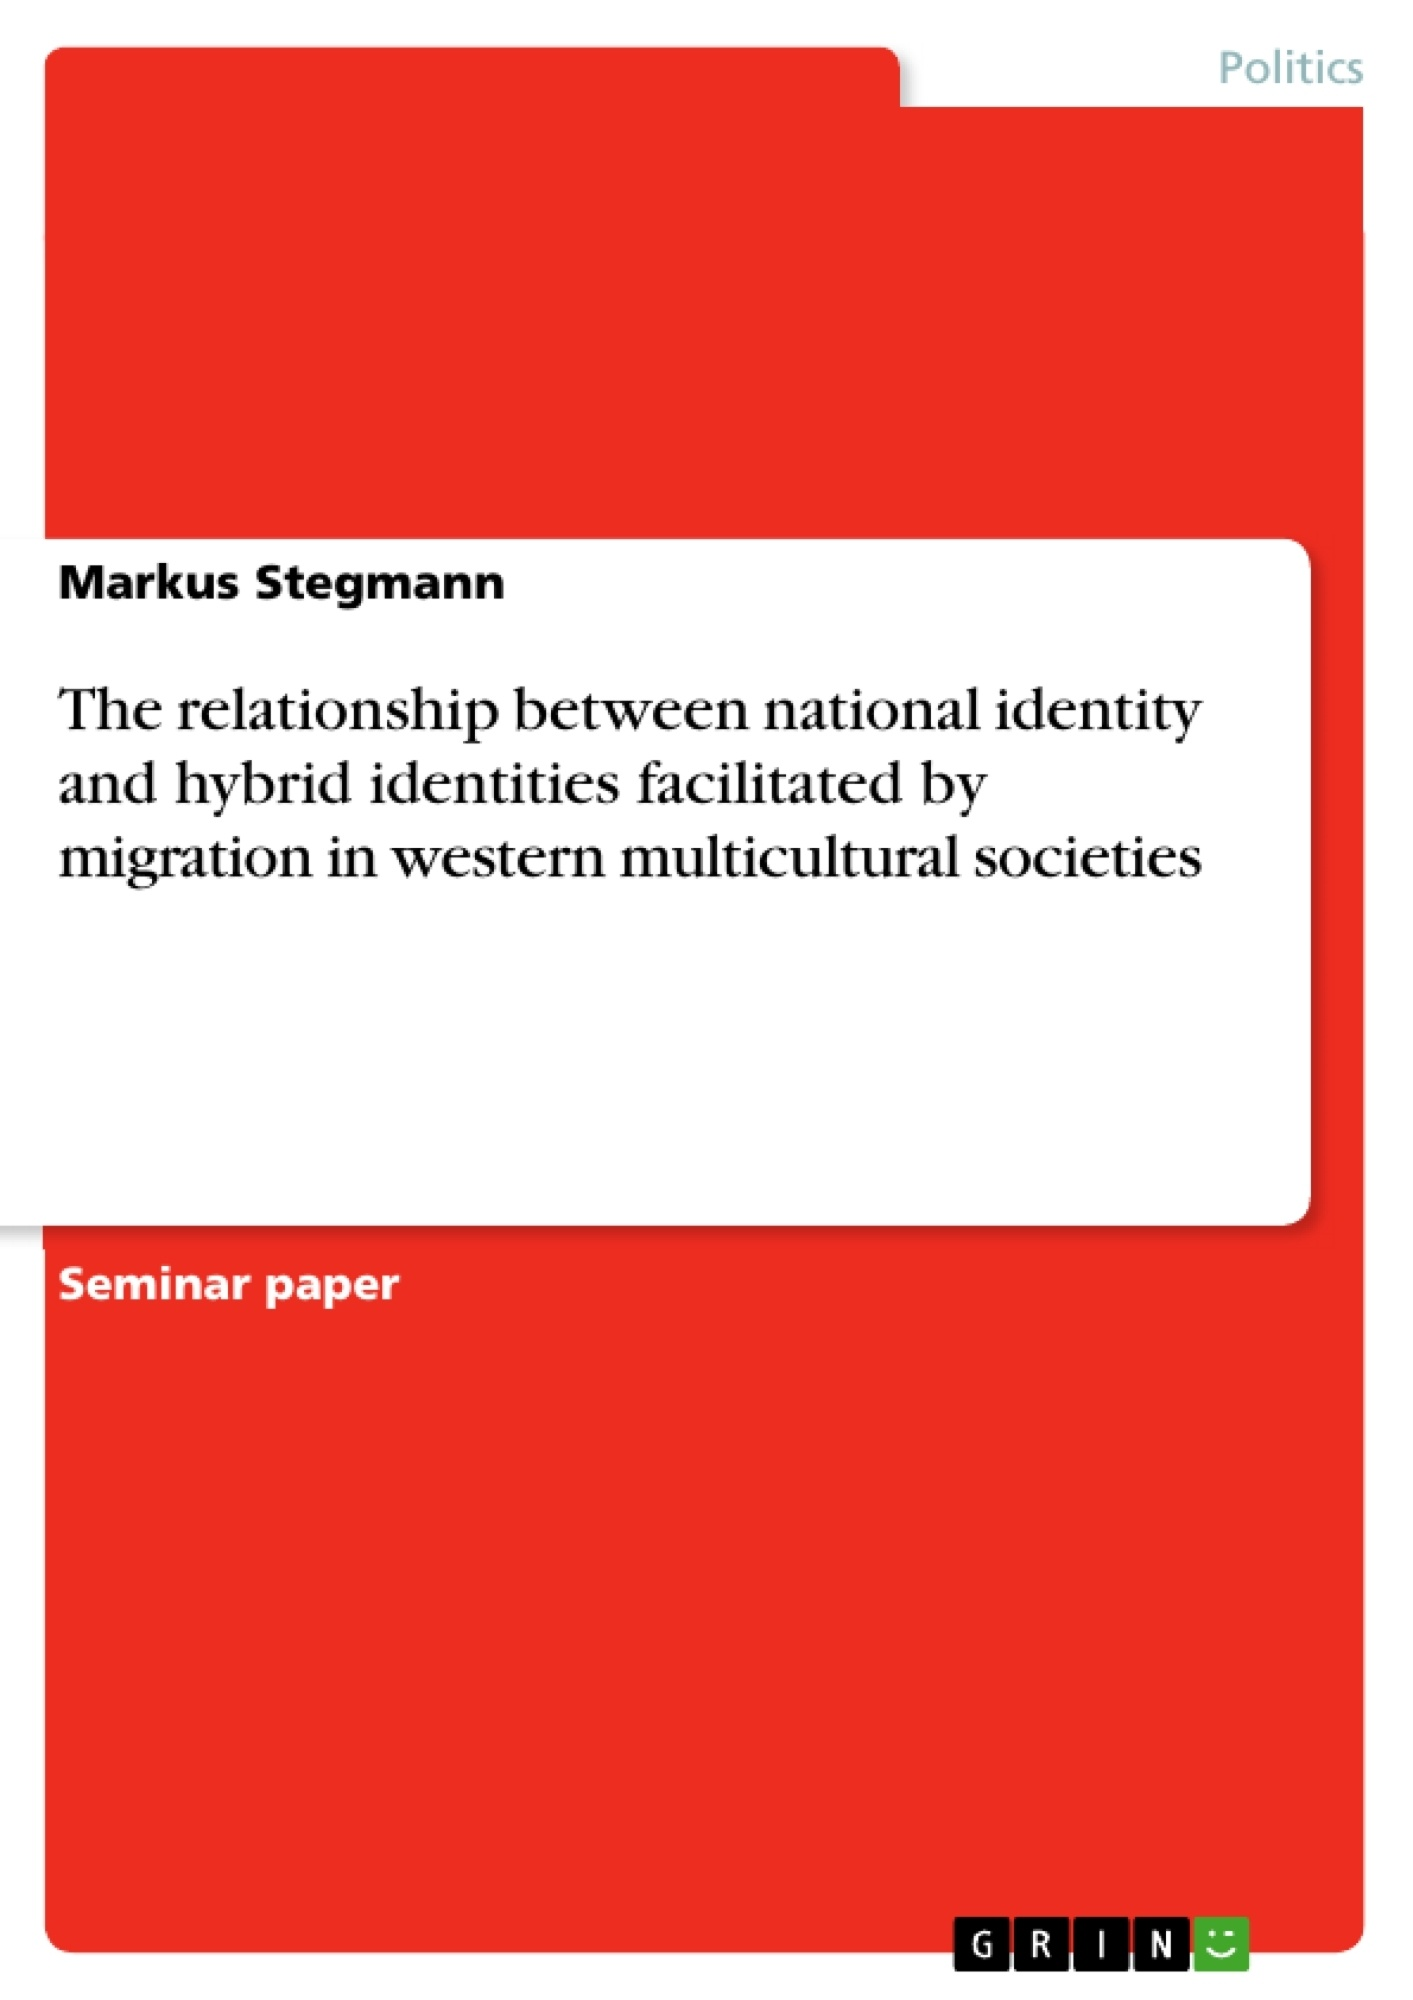 the relationship between national identity and hybrid identities upload your own papers earn money and win an iphone 7